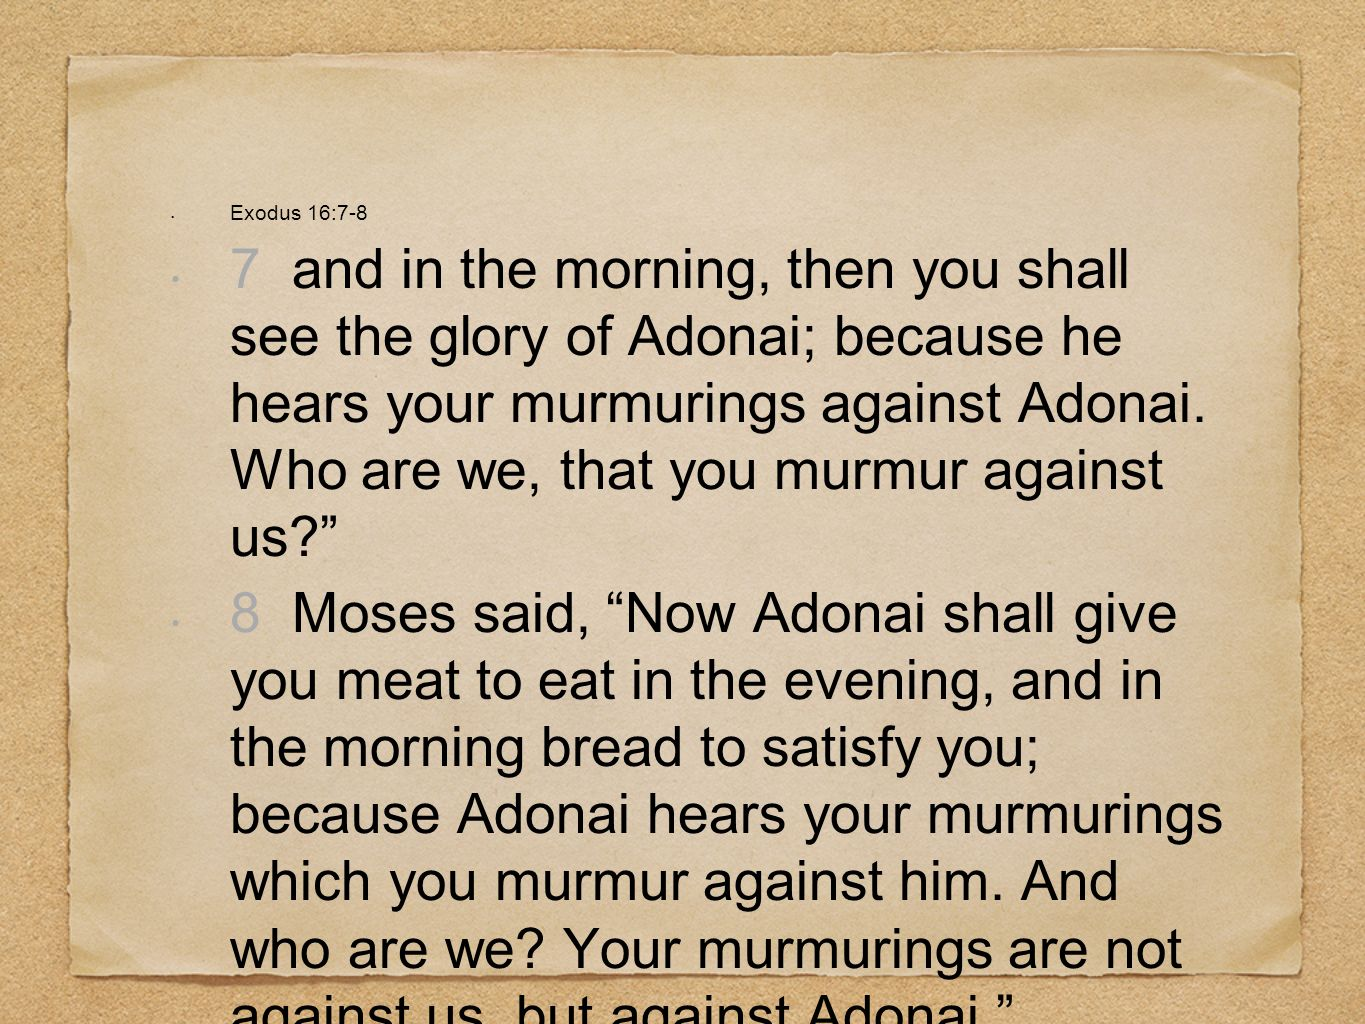 Exodus 16:7-8 7 and in the morning, then you shall see the glory of Adonai; because he hears your murmurings against Adonai.